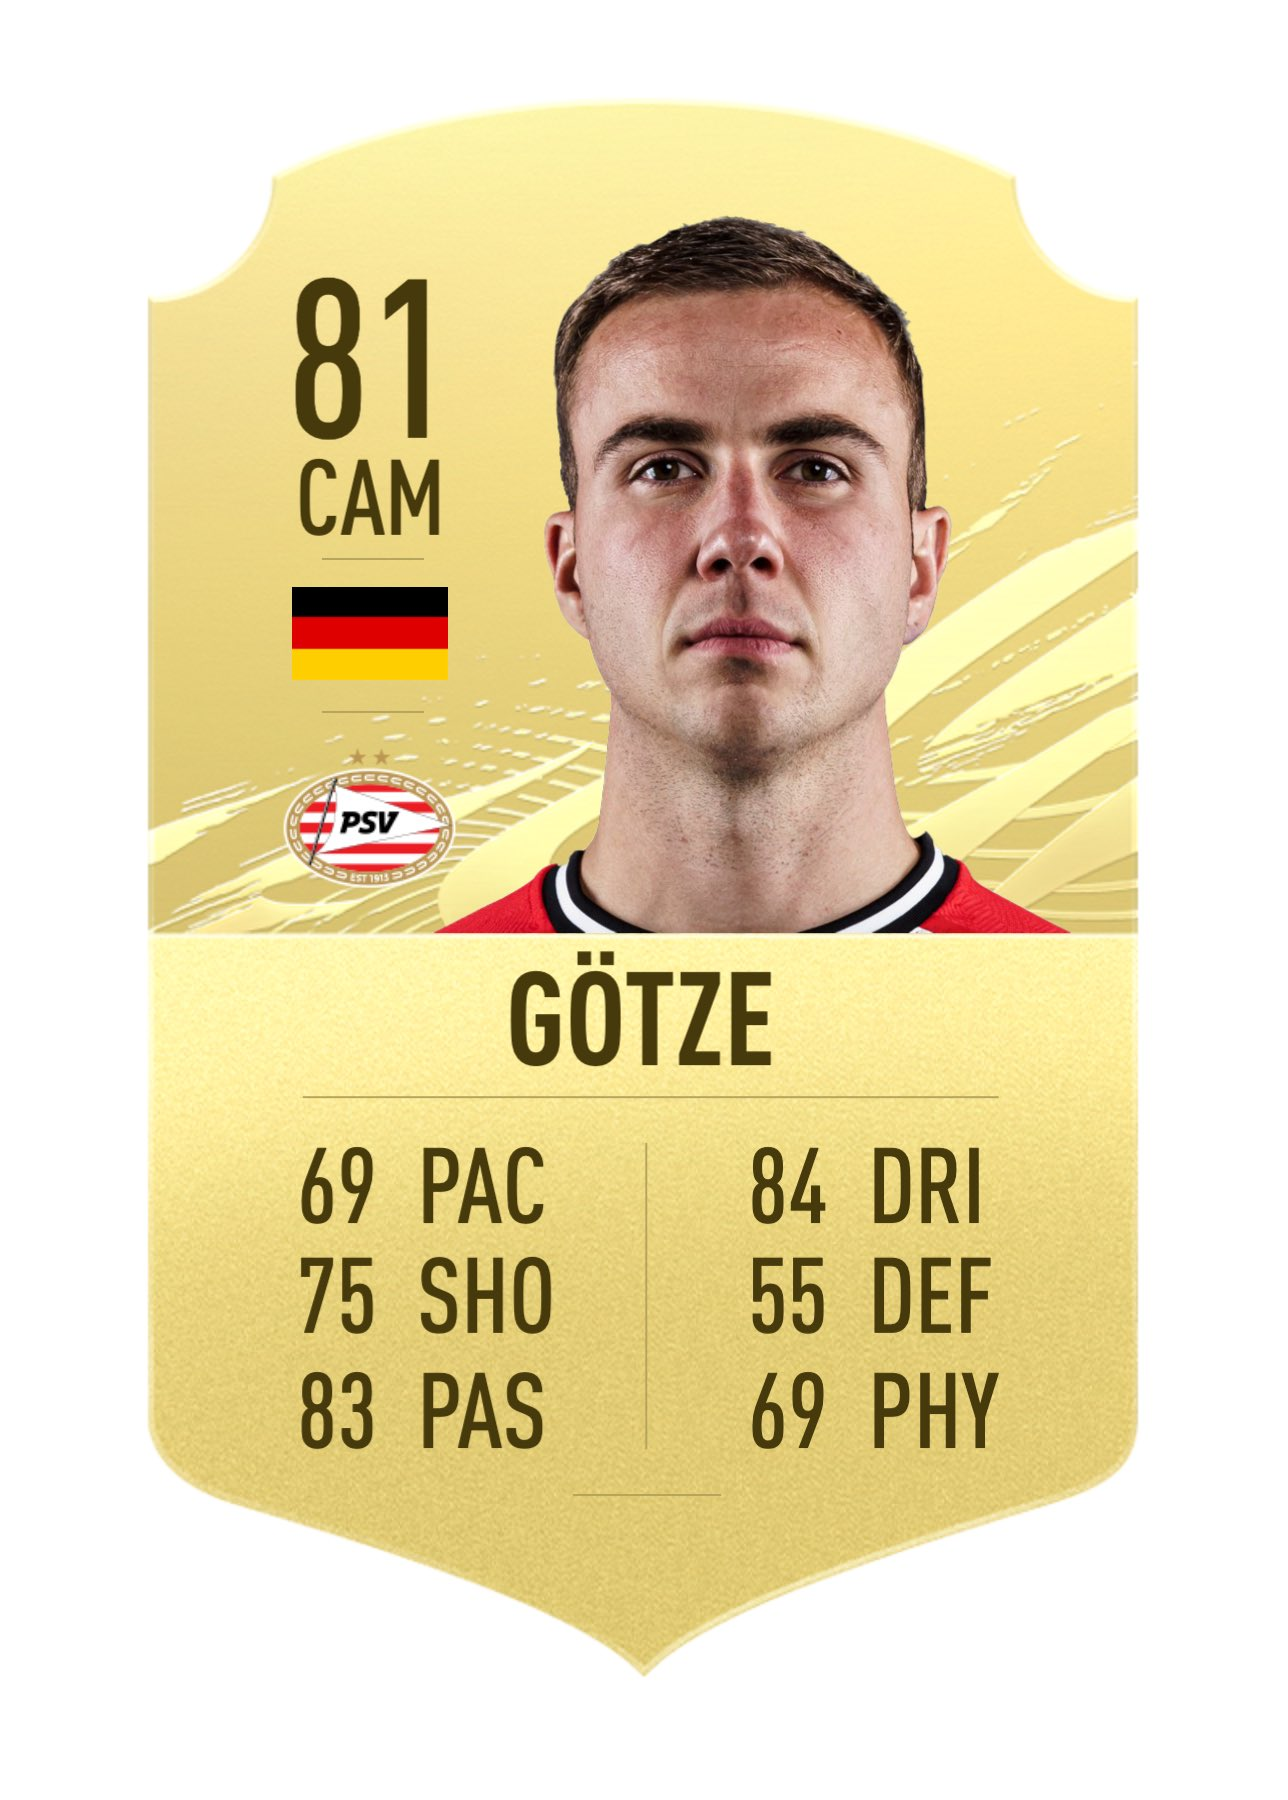 Patric On Twitter Mario Gotze To Psv Also Got Added This Should Be His Card In Fut Based On H2h Tell Me If You Know Any Other Free Agents Who Signed For